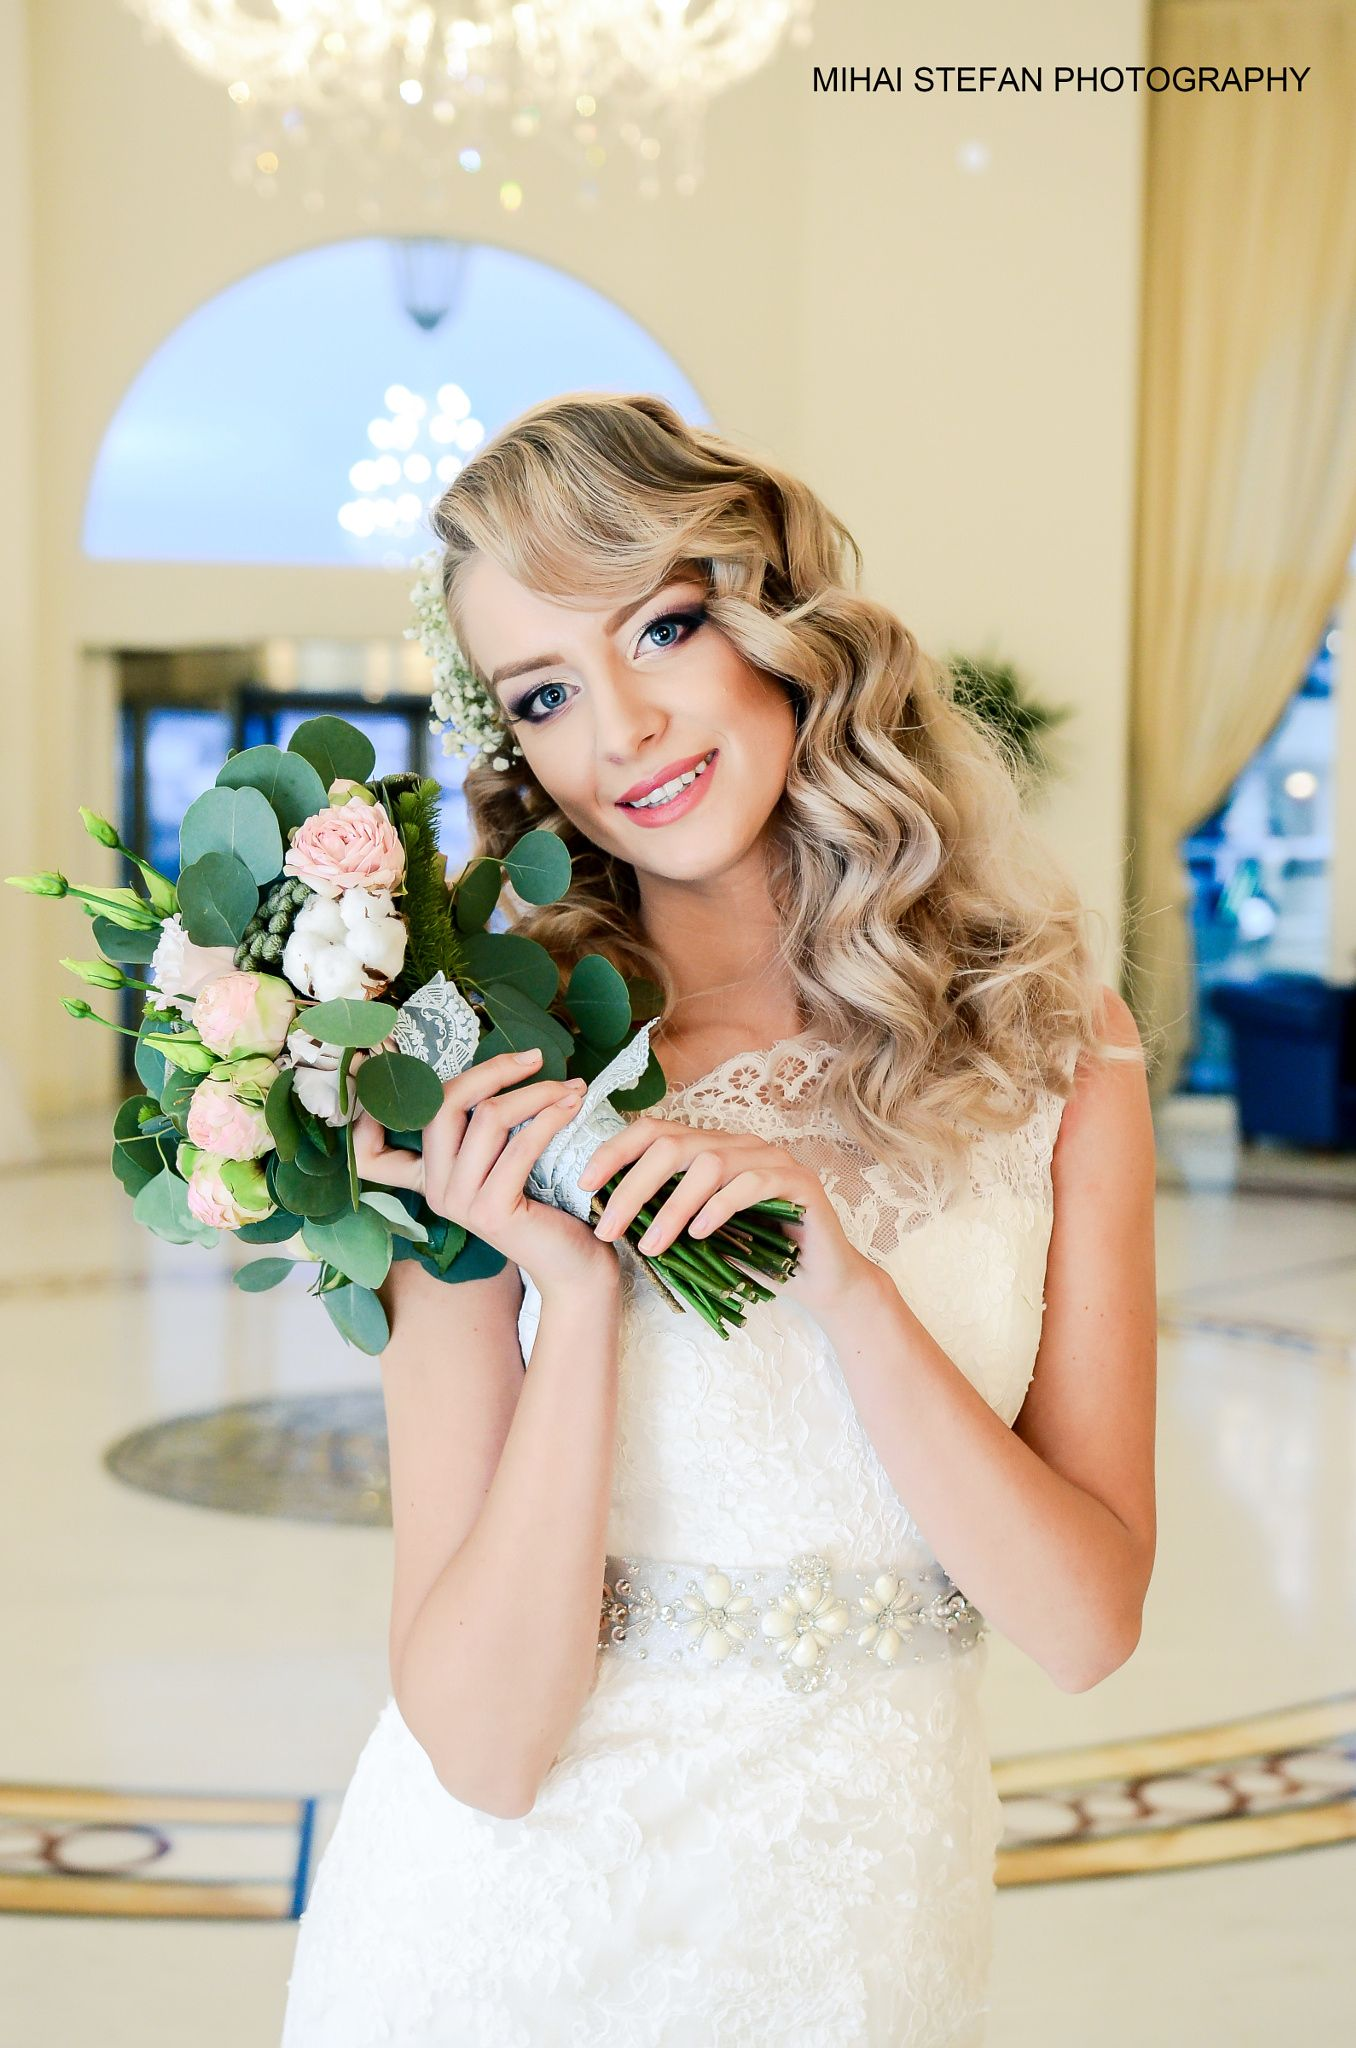 Wedding inspiration Mihai Stefan graphy Model Oana